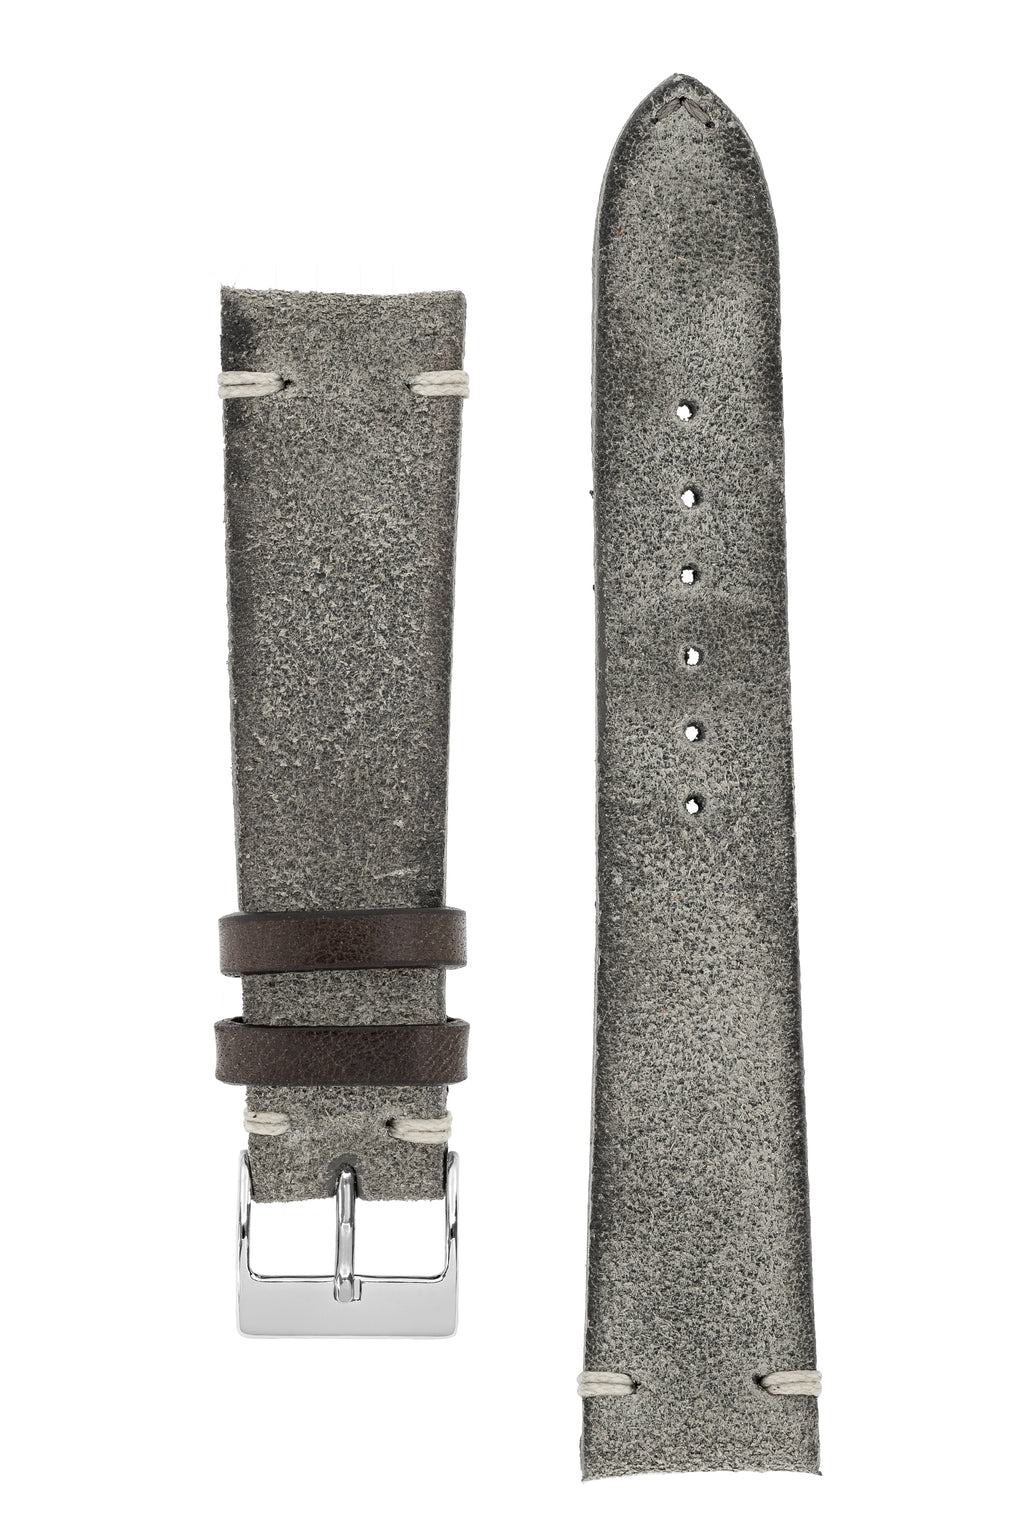 JPM Italian Distressed Tasso Leather Watch Strap in GREY – KickToc Edition